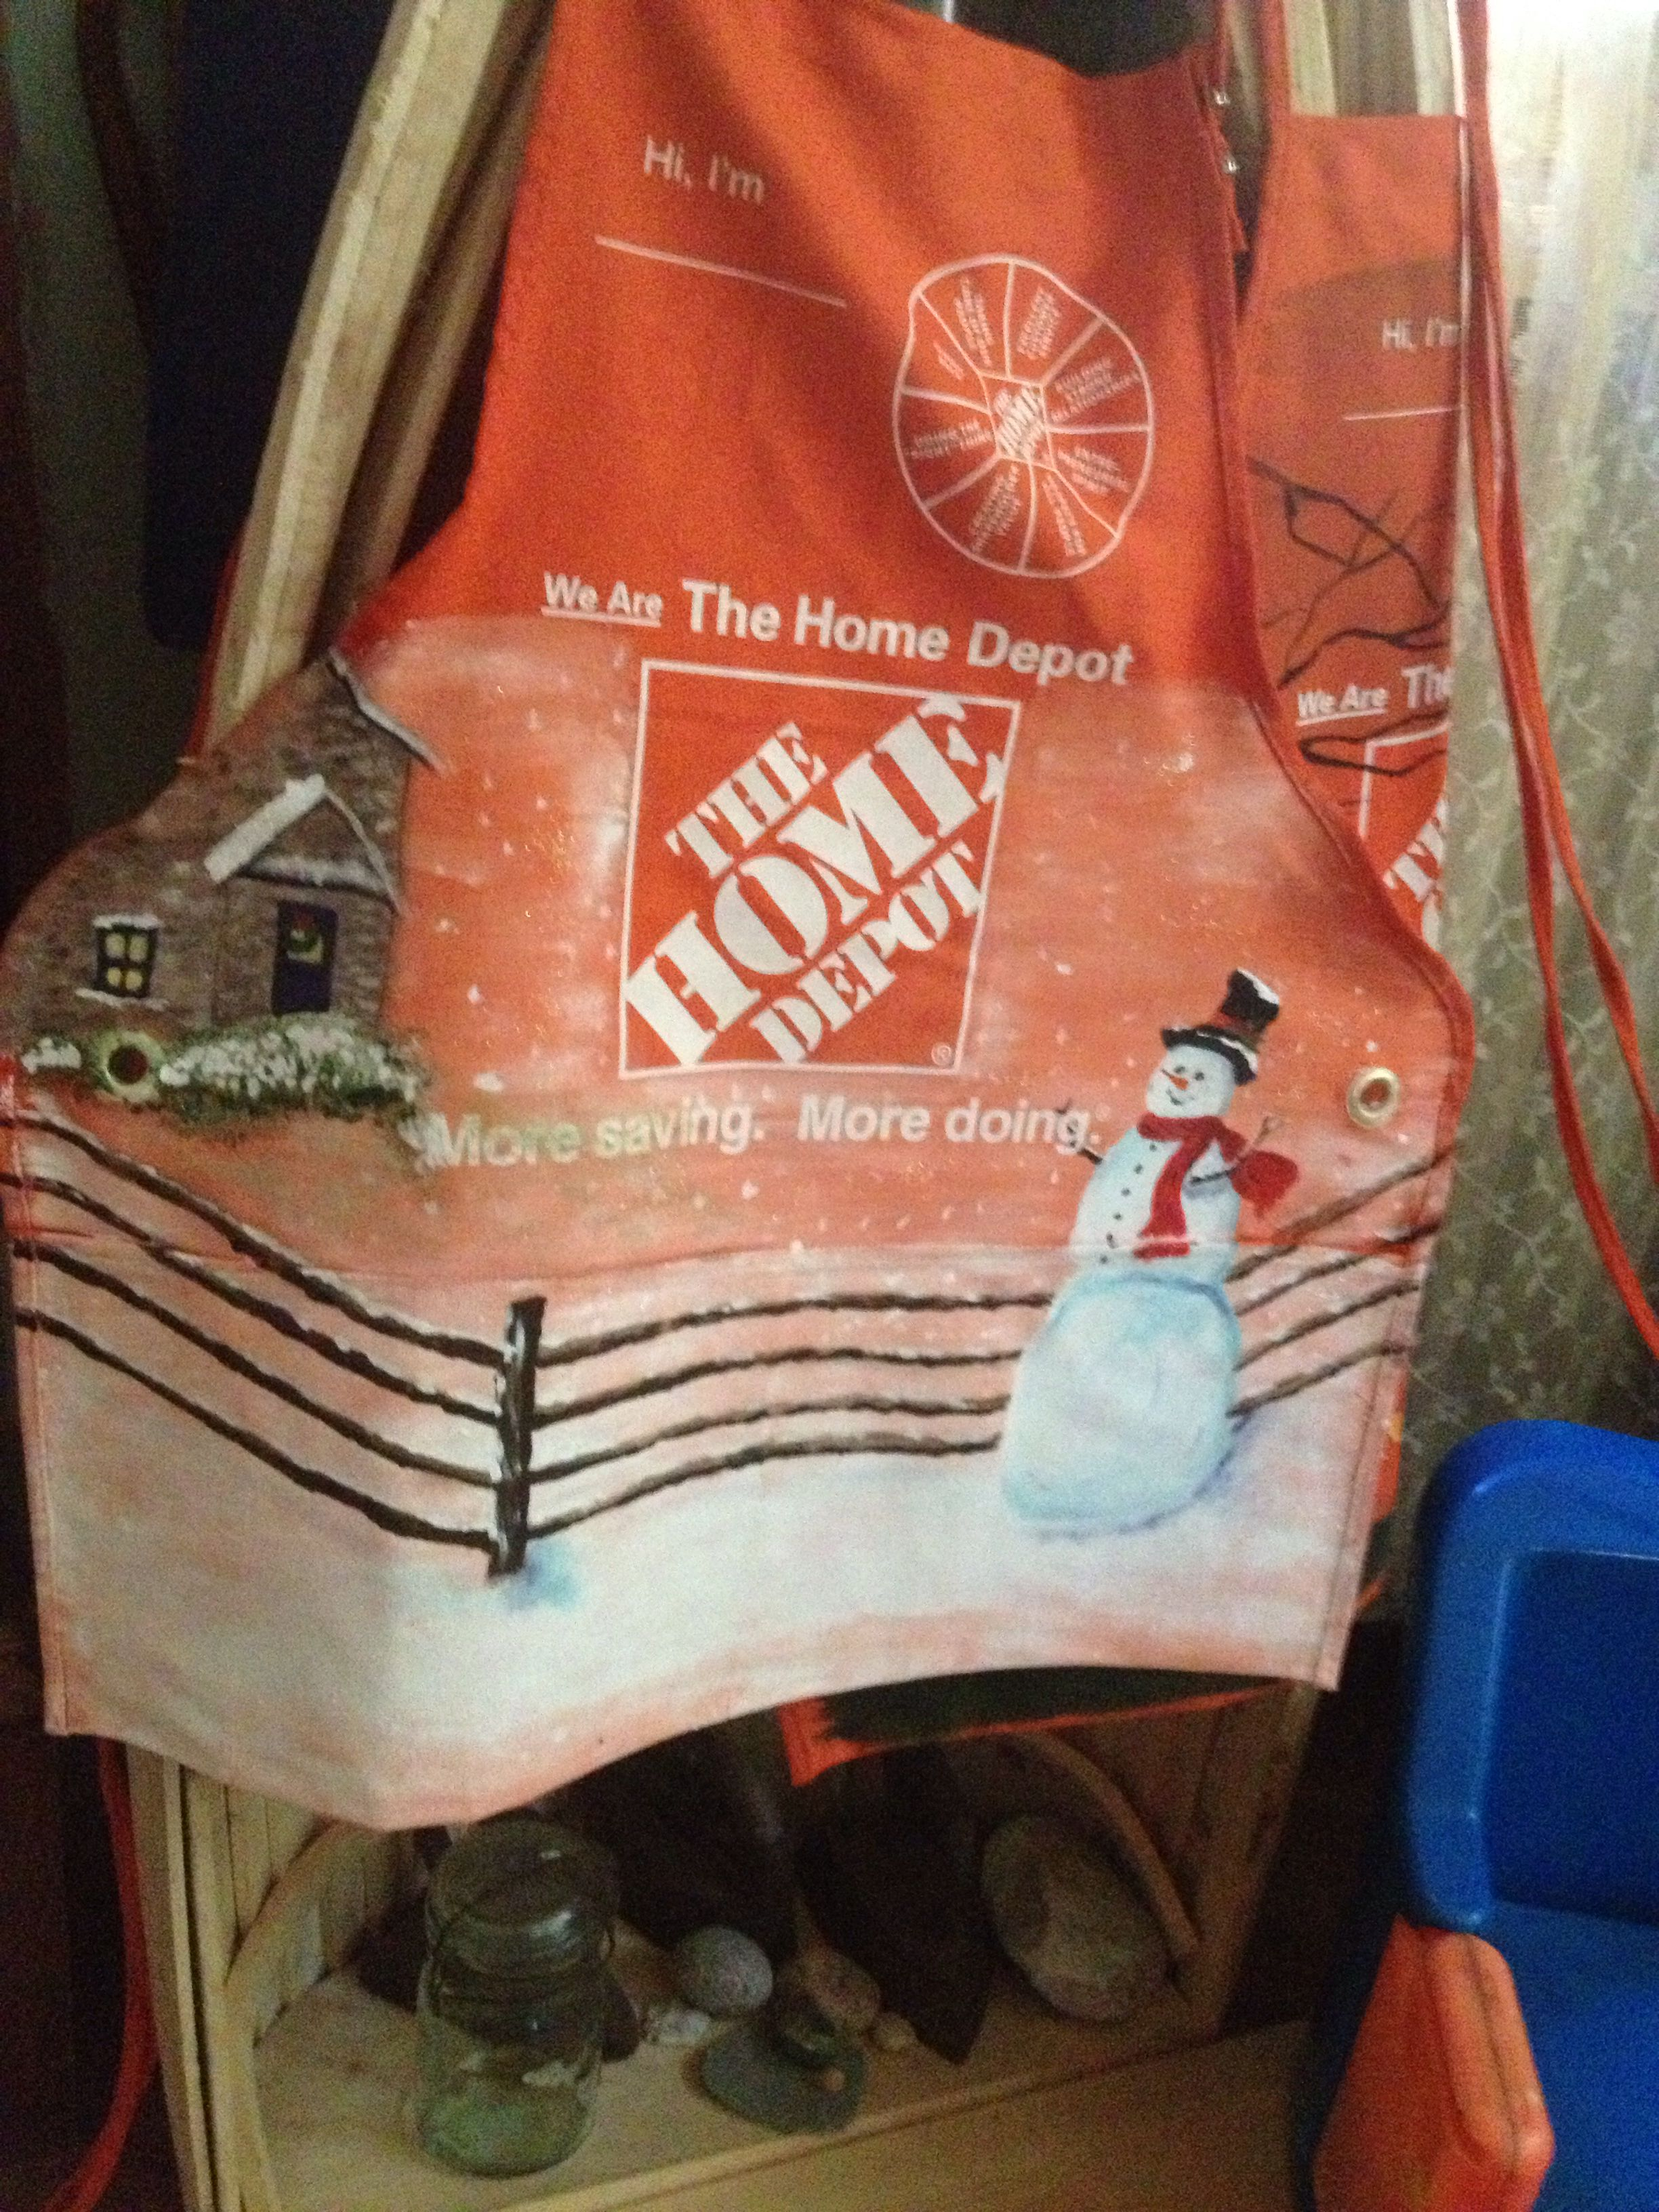 Home Depot apron Done by Roberta Smith Won 2nd place